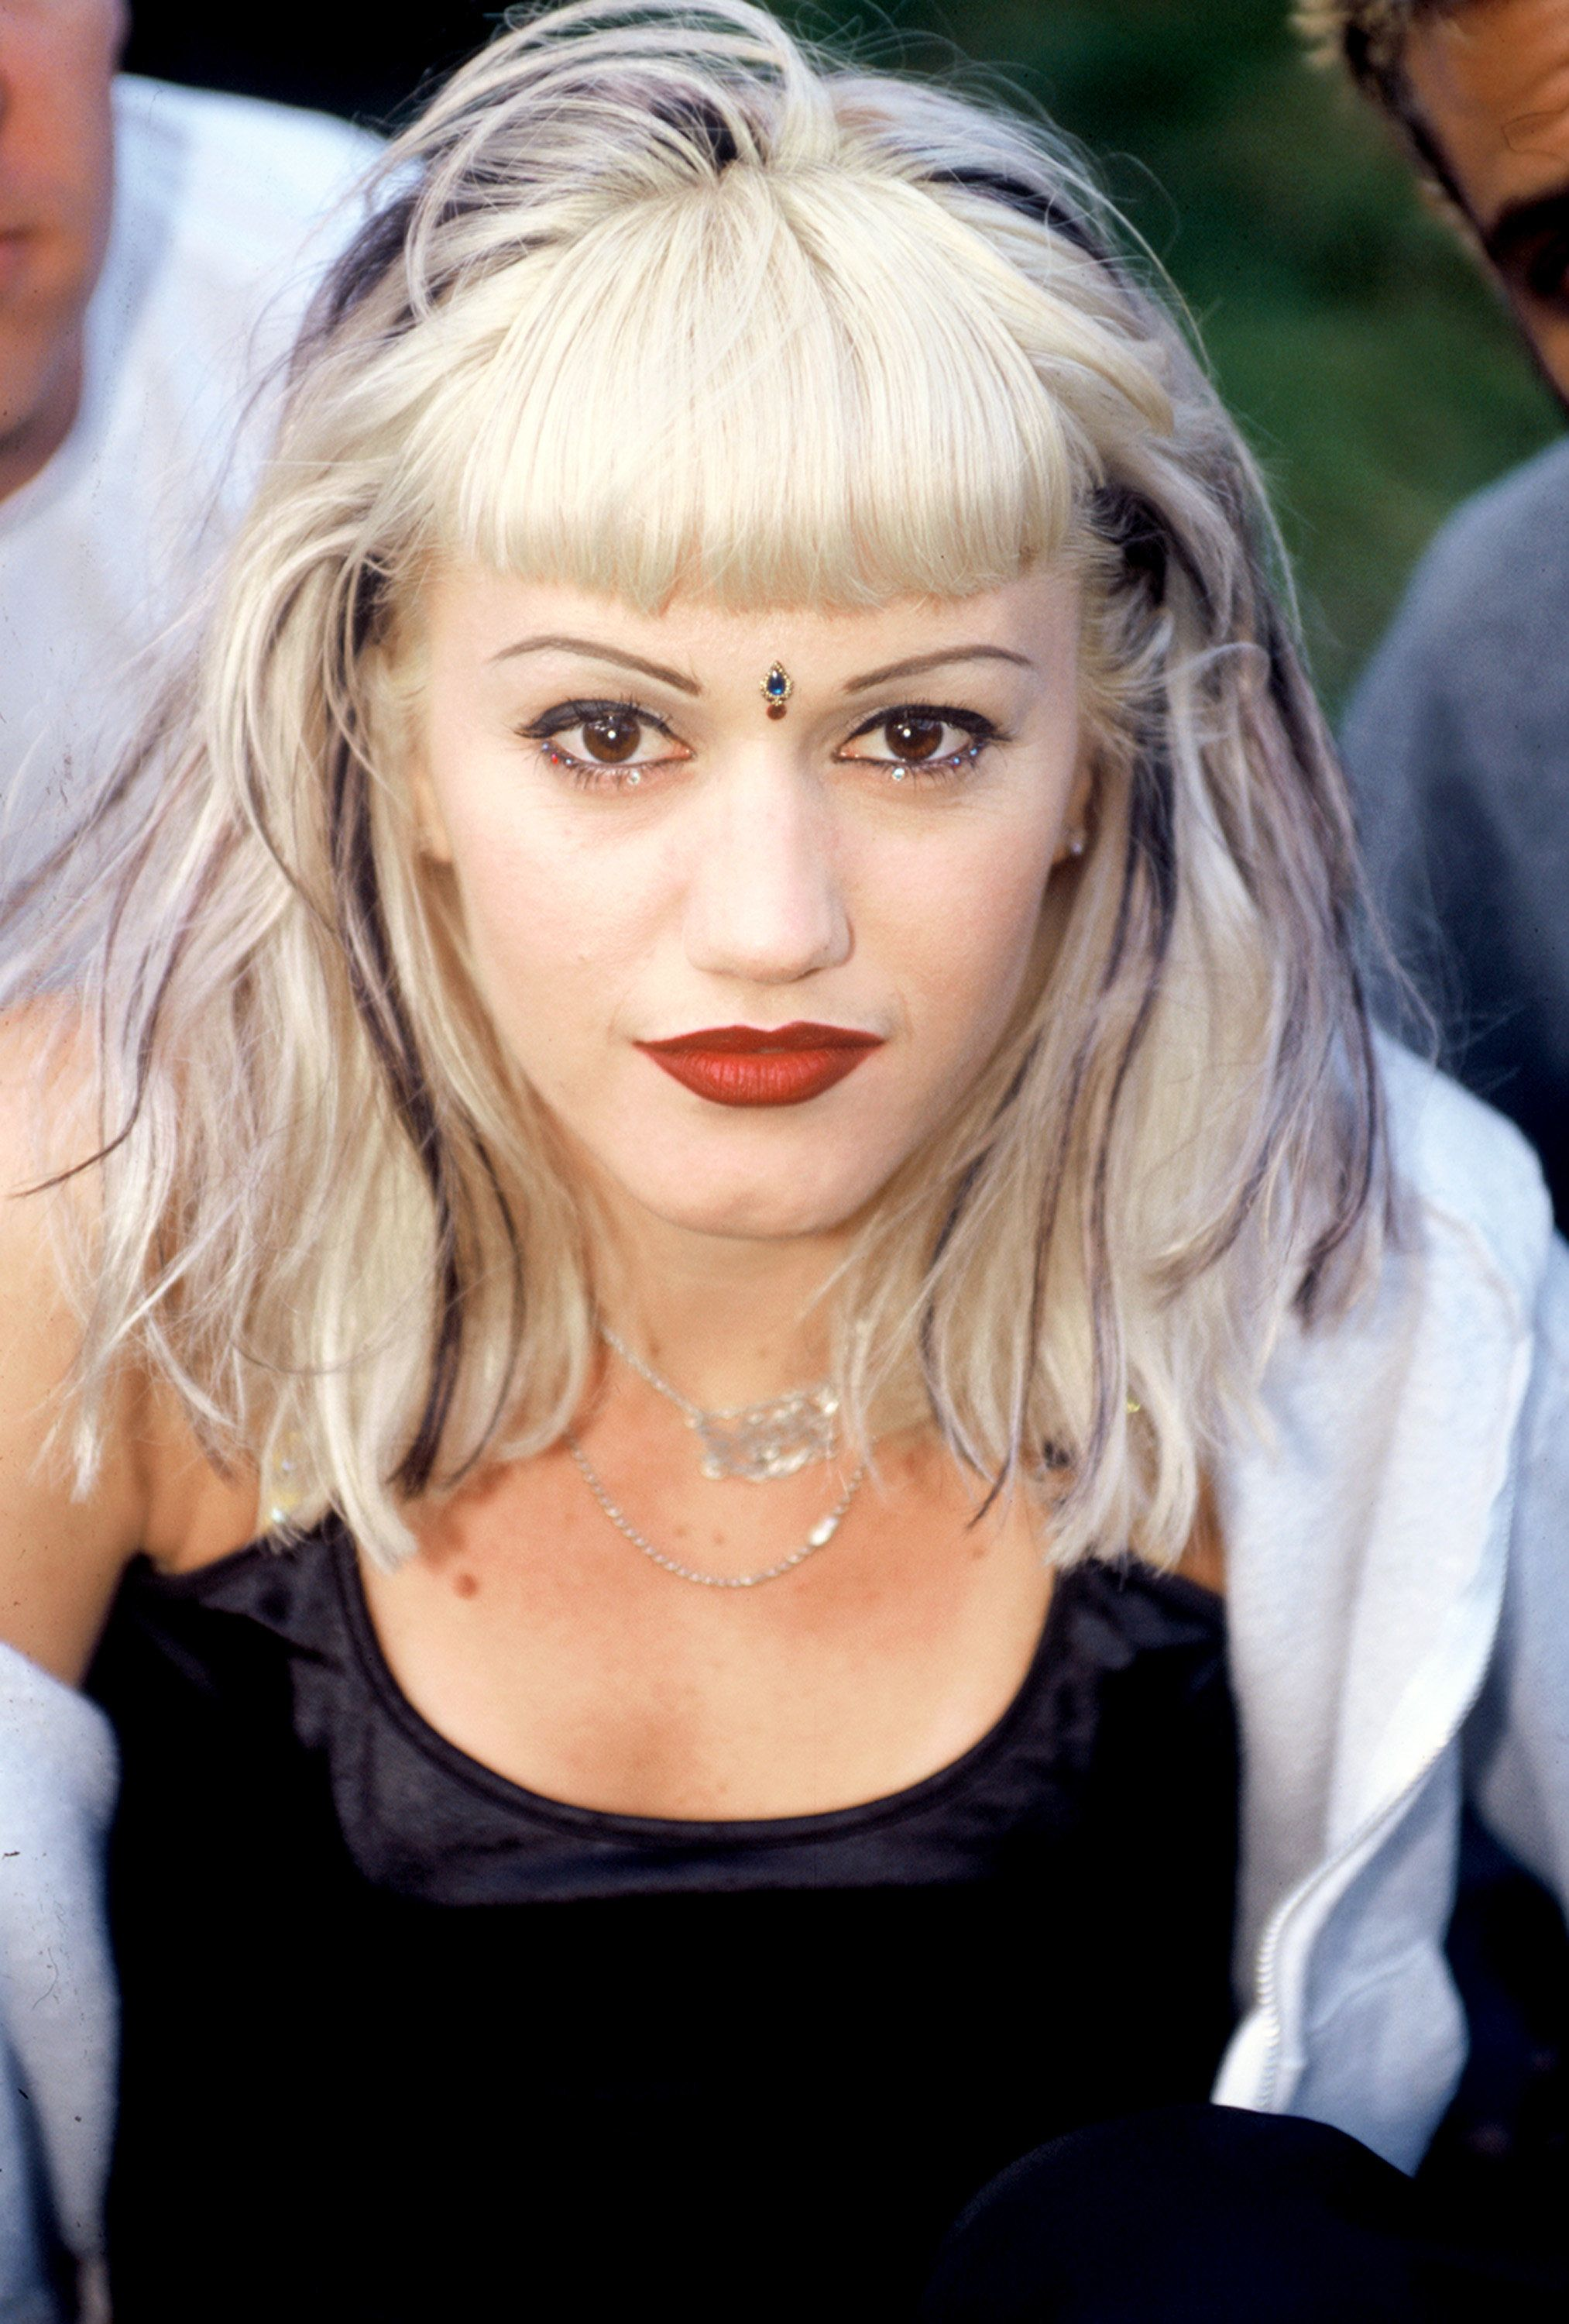 MOUNTAIN VIEW, CA - JUNE 14: Gwen Stefani of No Doubt backstage Live 105's BFD 1996 at Shoreline Amphitheatre on June 14, 1996 in Mountain View, California. (Photo by Tim Mosenfelder/Getty Images)